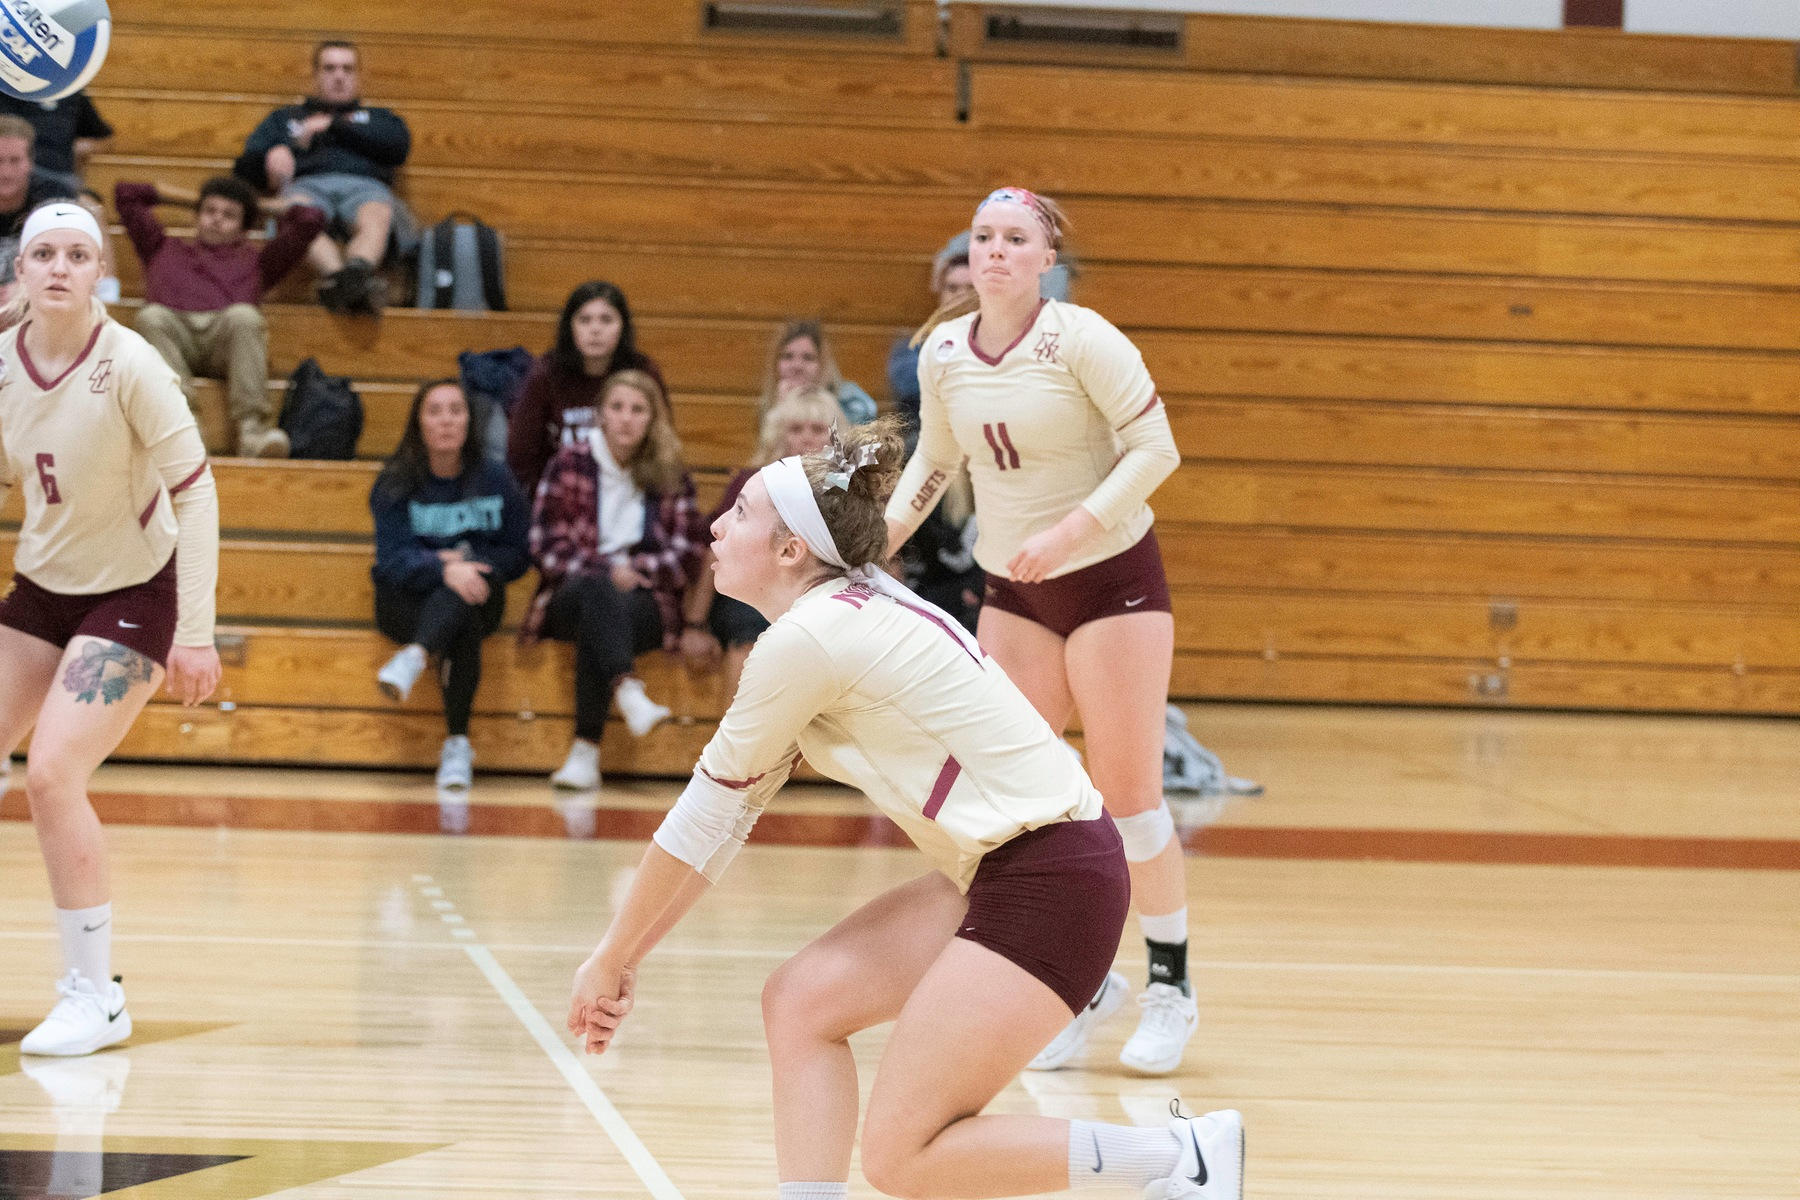 Volleyball: Cadets drop Castleton, 3-0